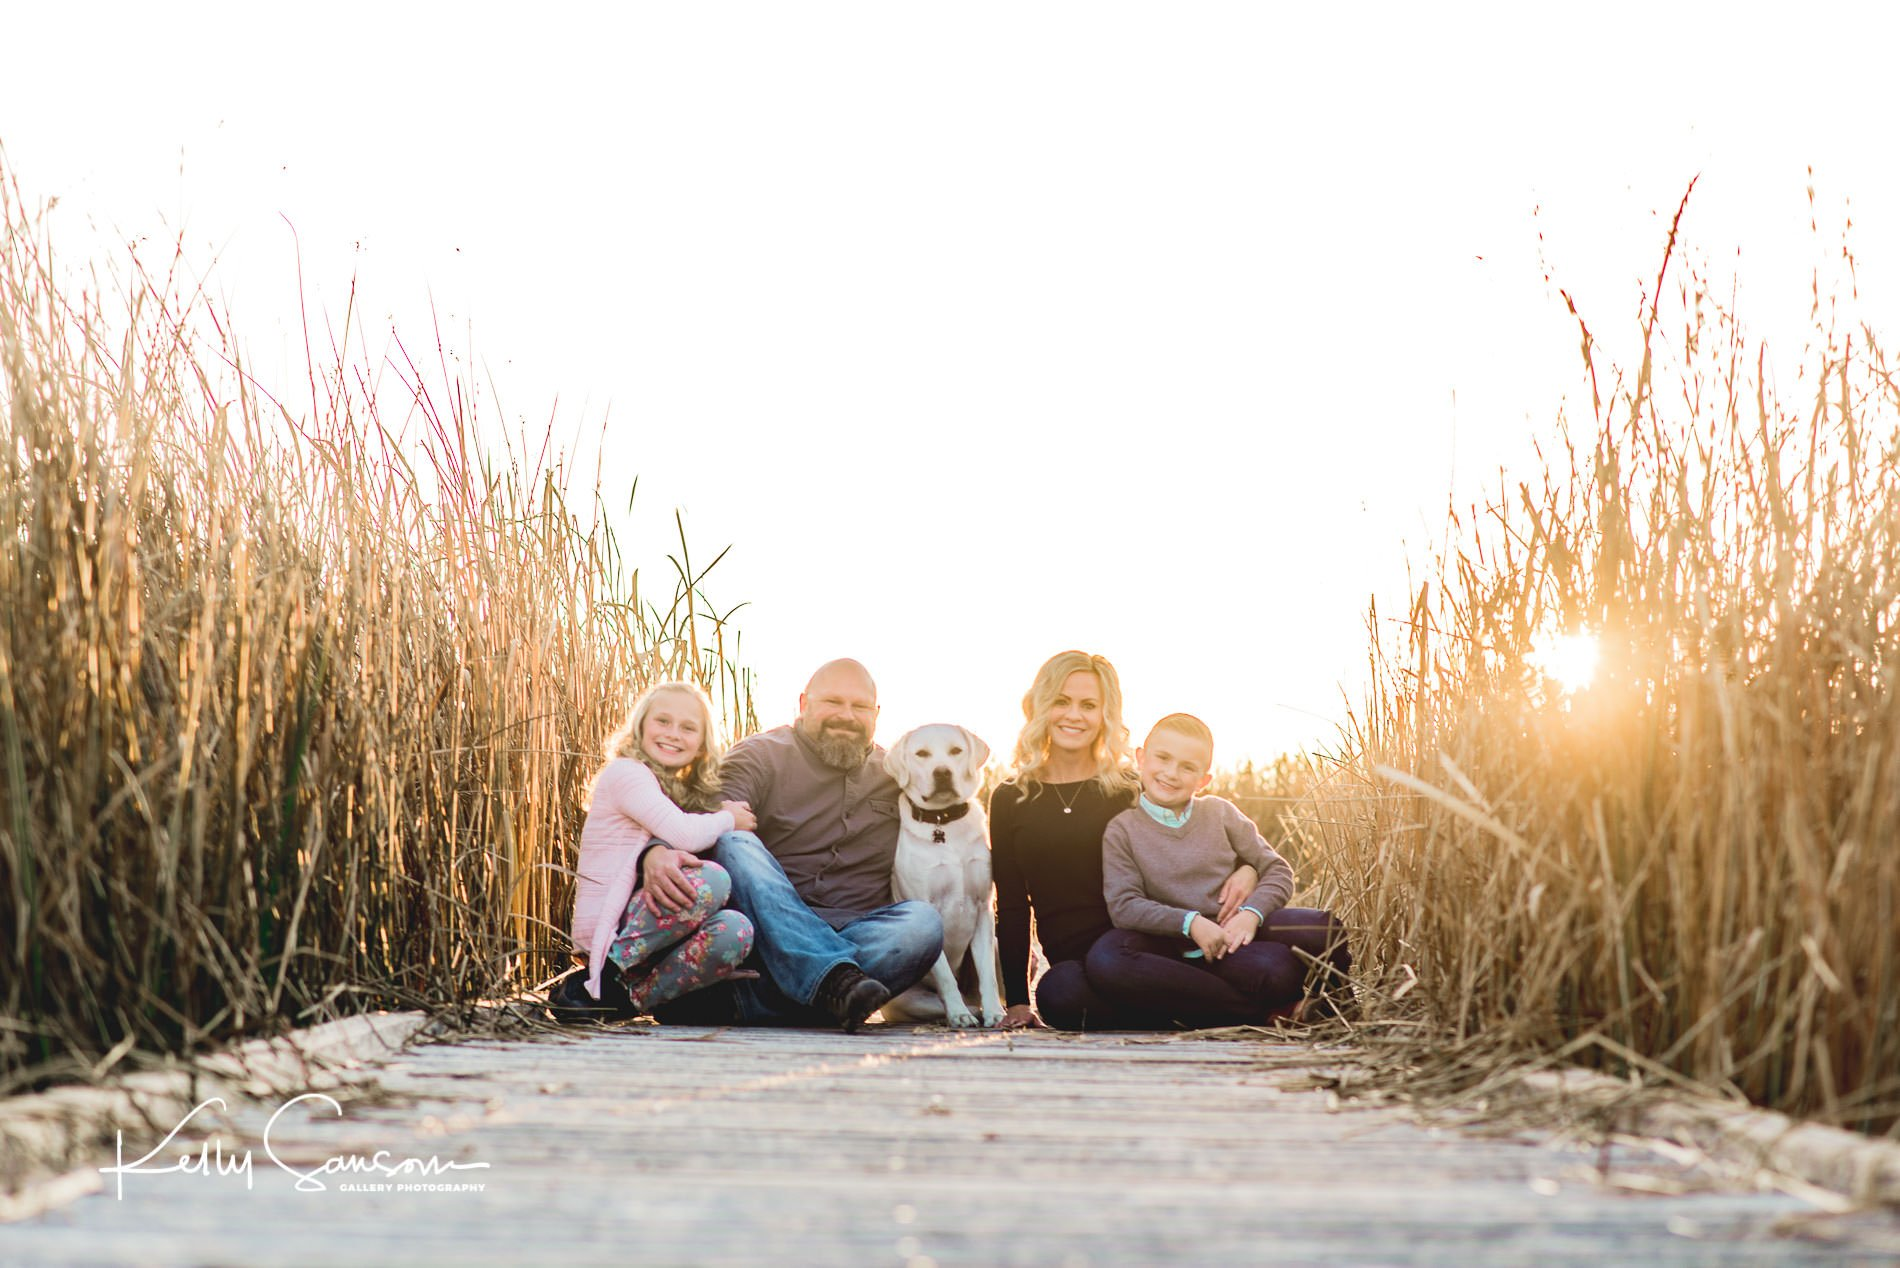 A family with a dog sitting on a board walk smiling at the camera for Ogden portrait photography.